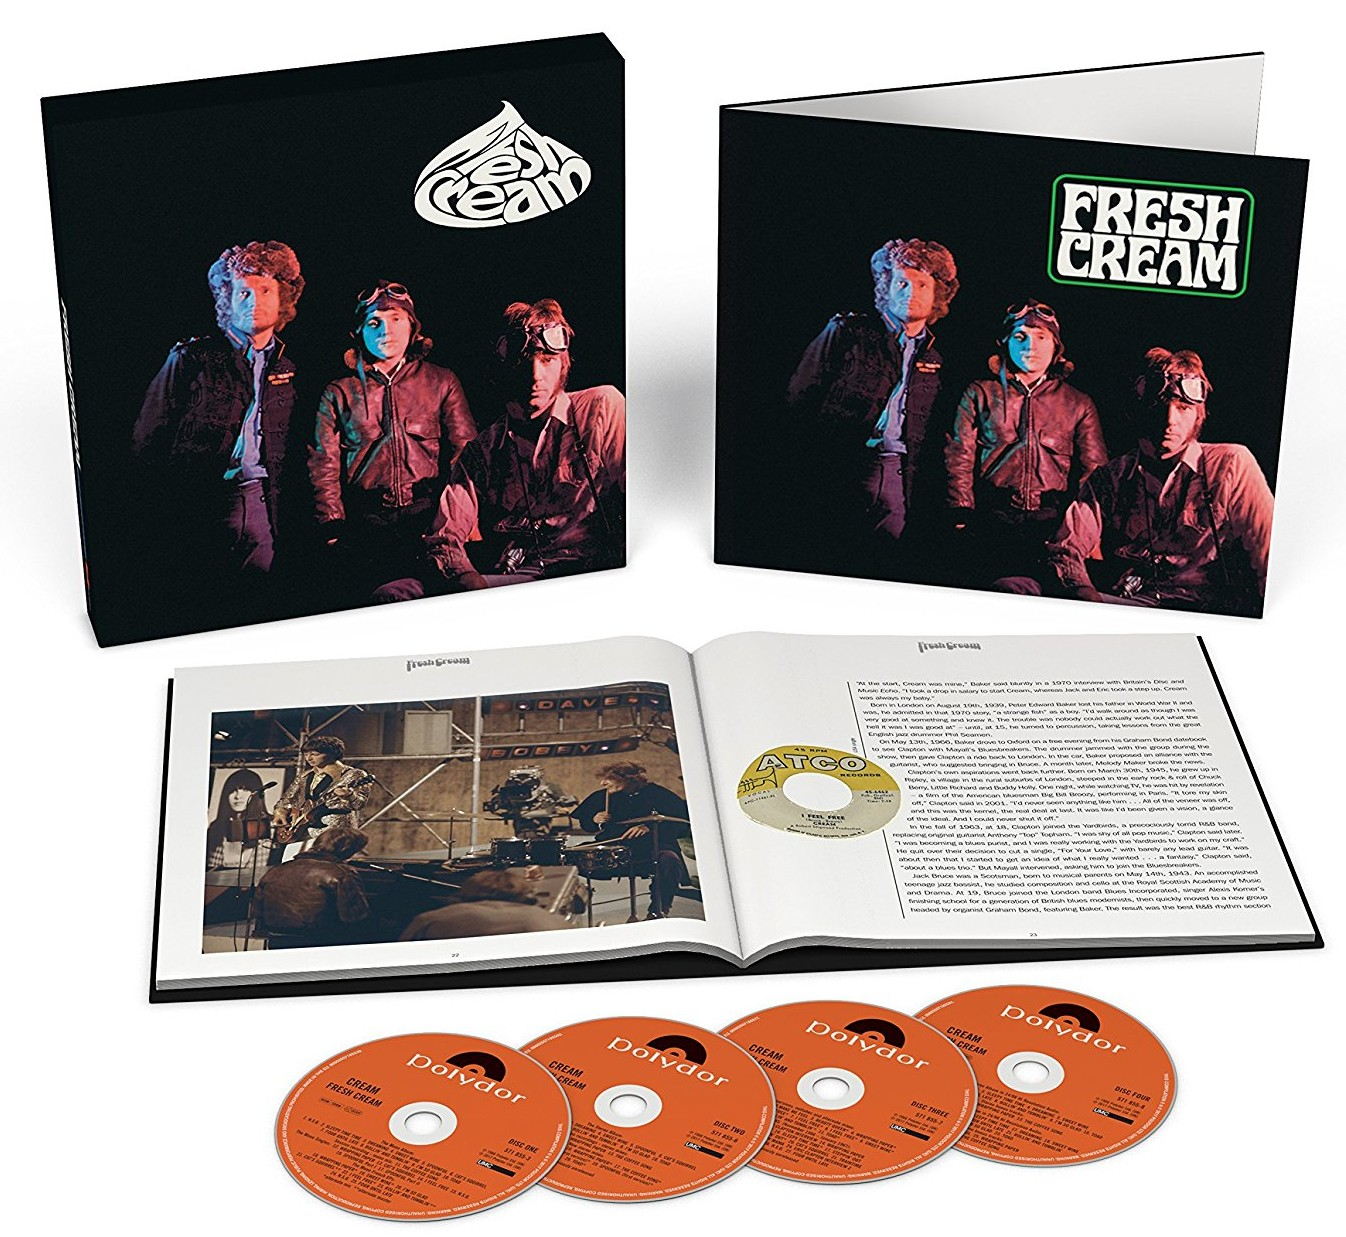 Cream / Fresh Cream super deluxe edition reissue